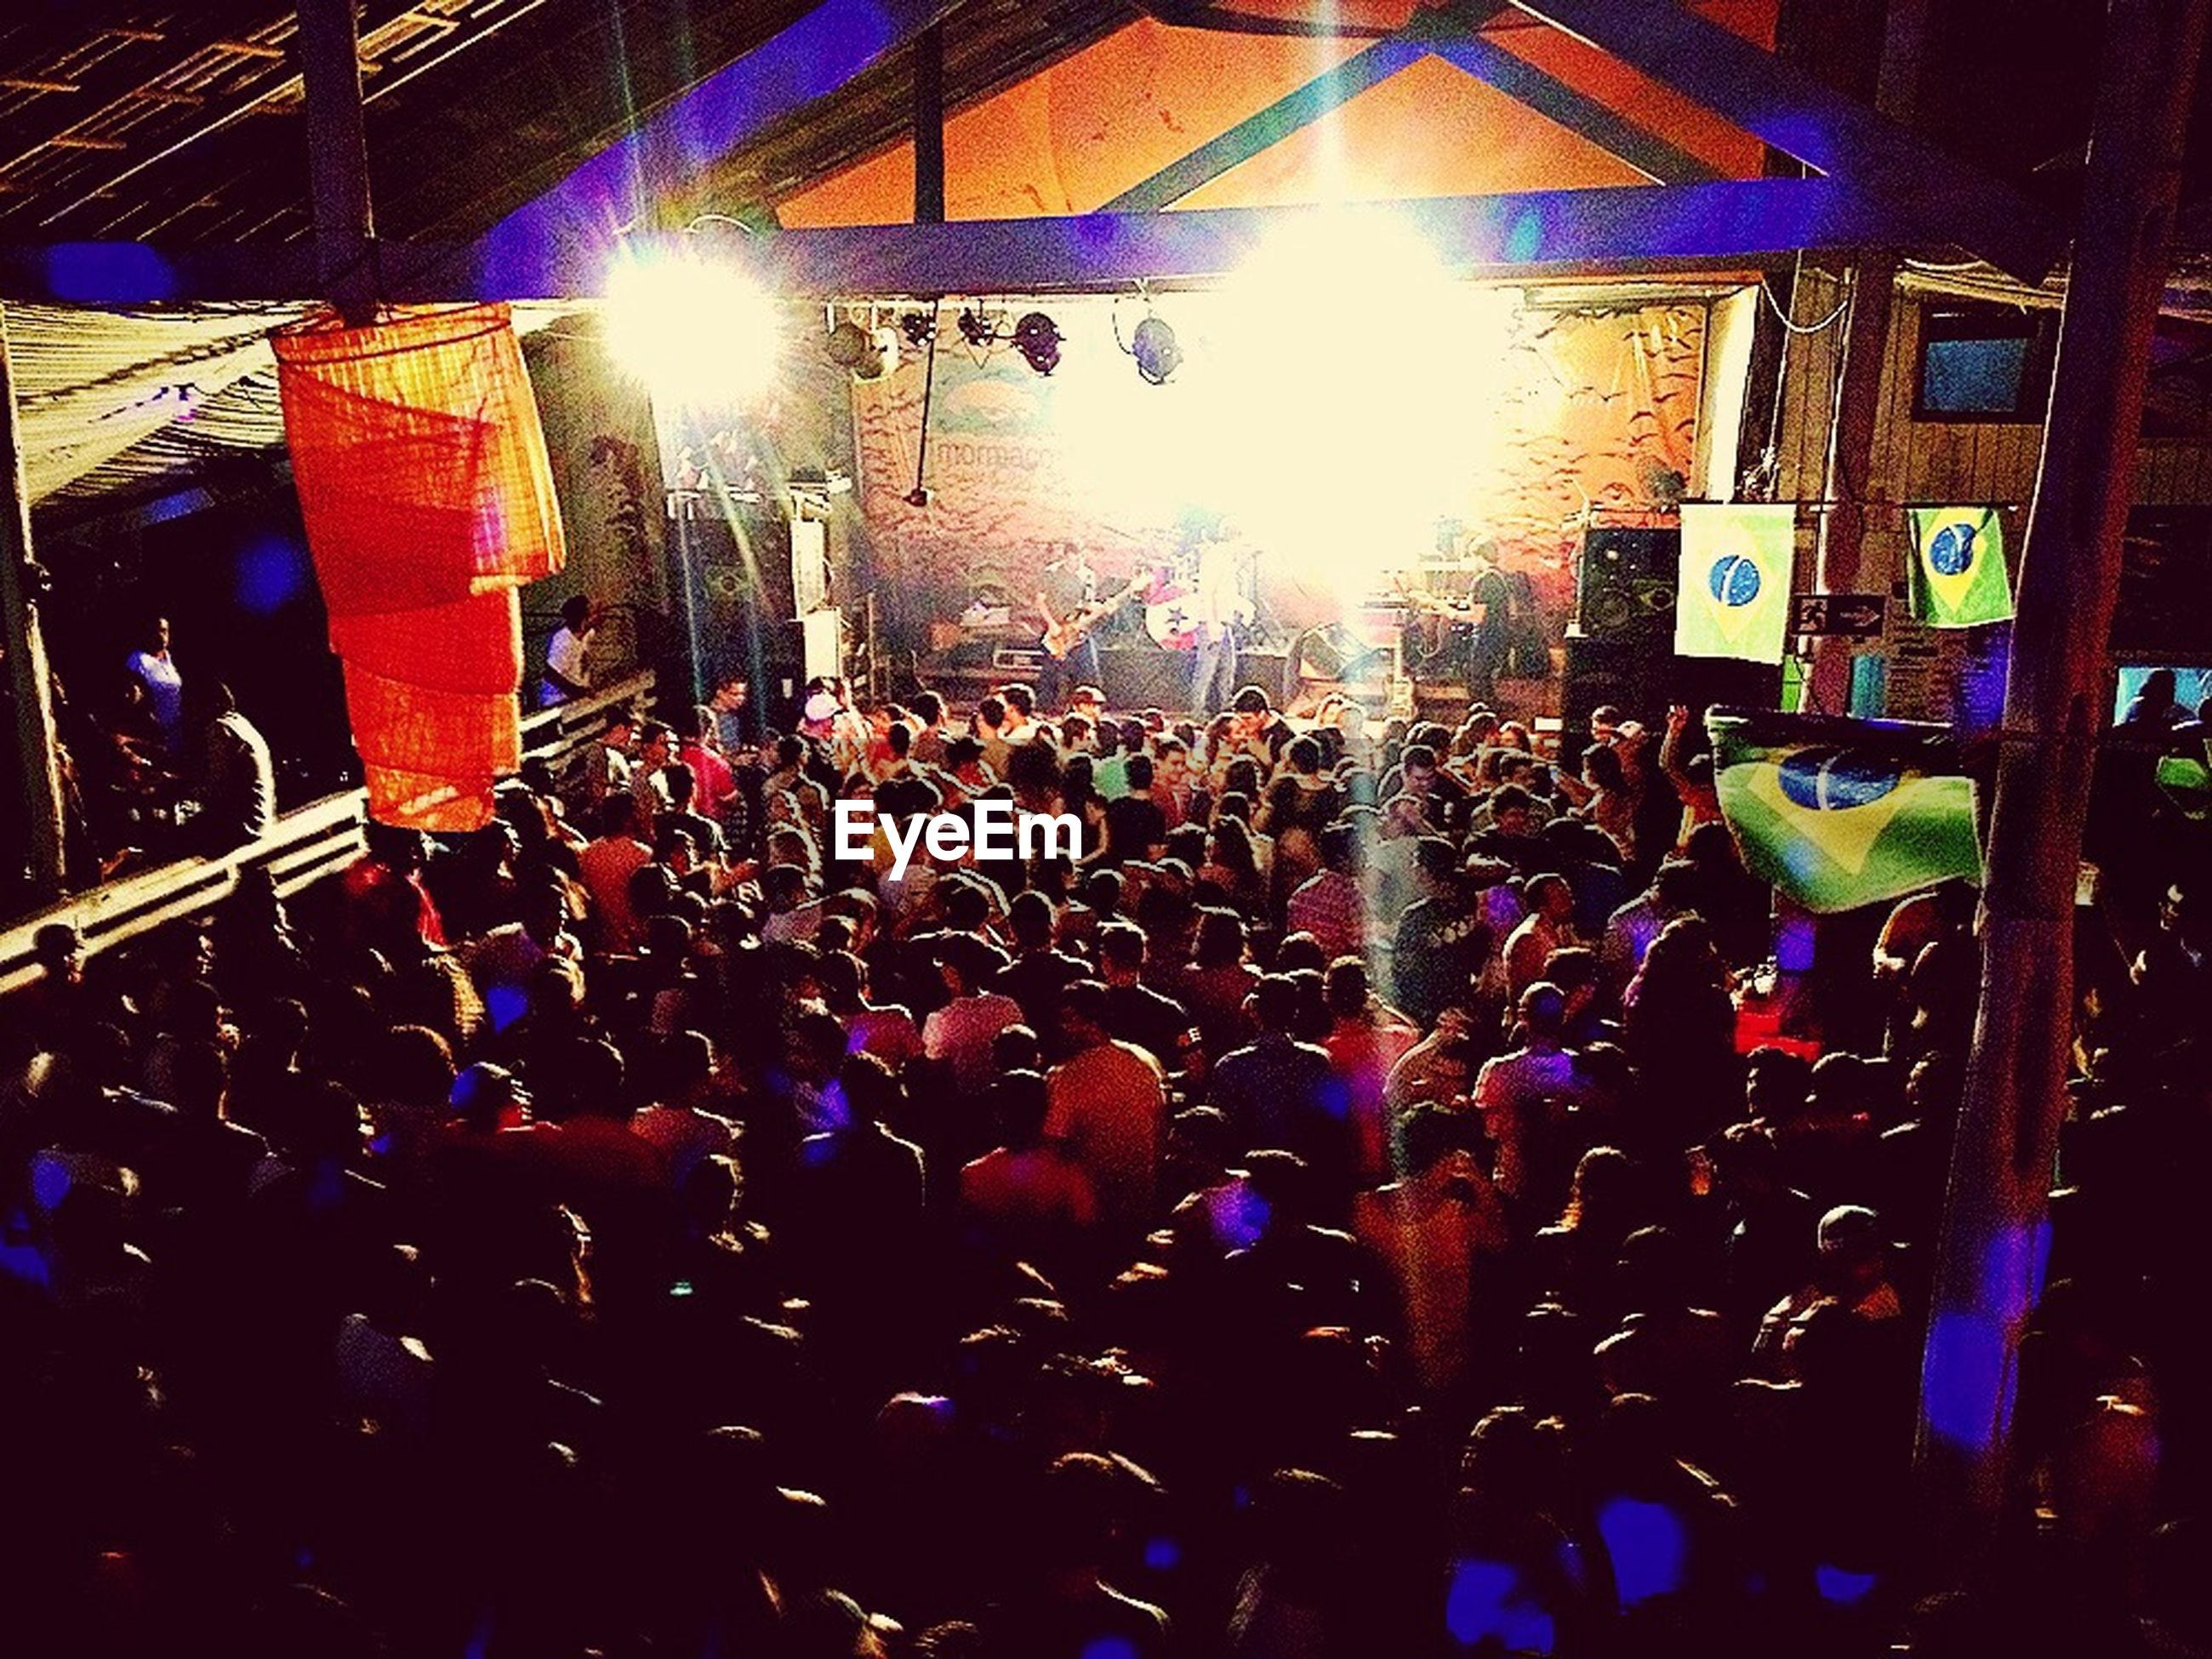 large group of people, crowd, illuminated, night, men, lifestyles, nightlife, person, leisure activity, enjoyment, arts culture and entertainment, music, lighting equipment, popular music concert, event, music festival, concert, performance